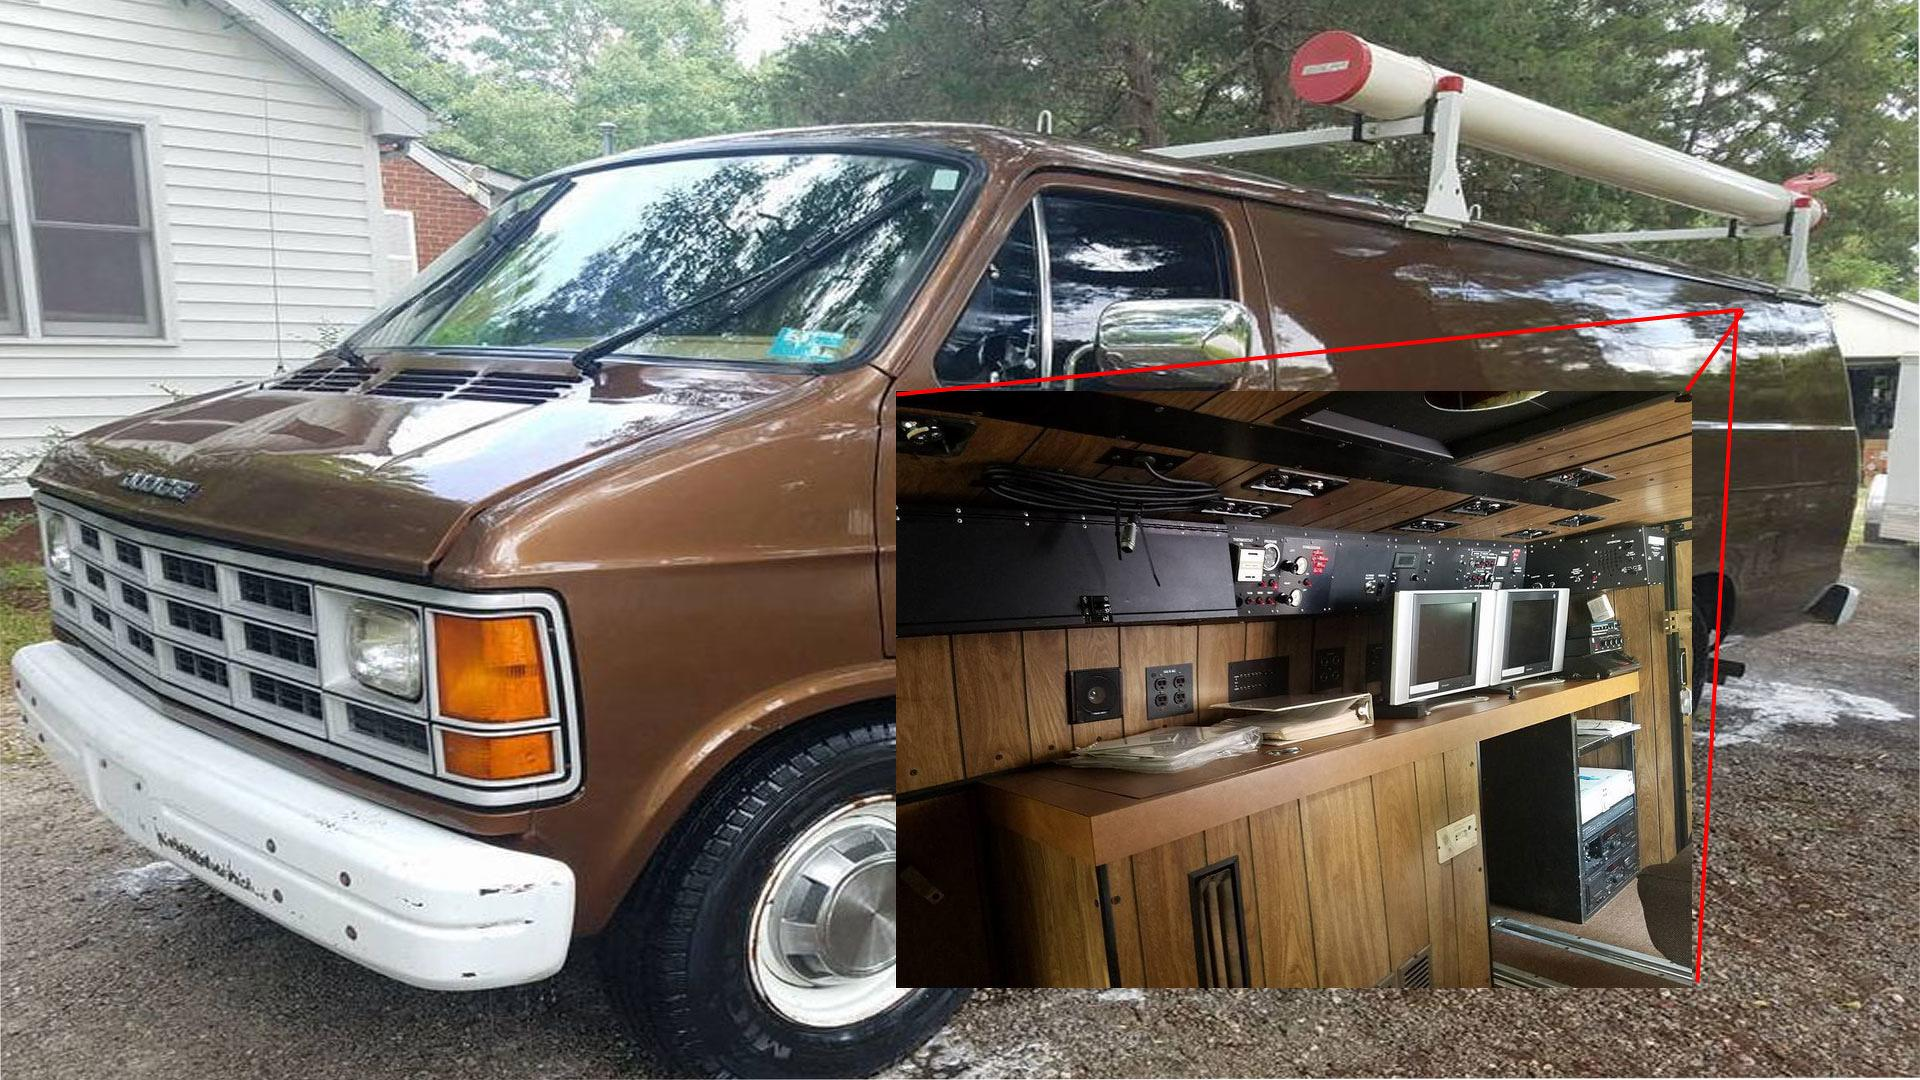 Buy This FBI Surveillance Van And Feel Like An Empowered G-Man 046d50f95